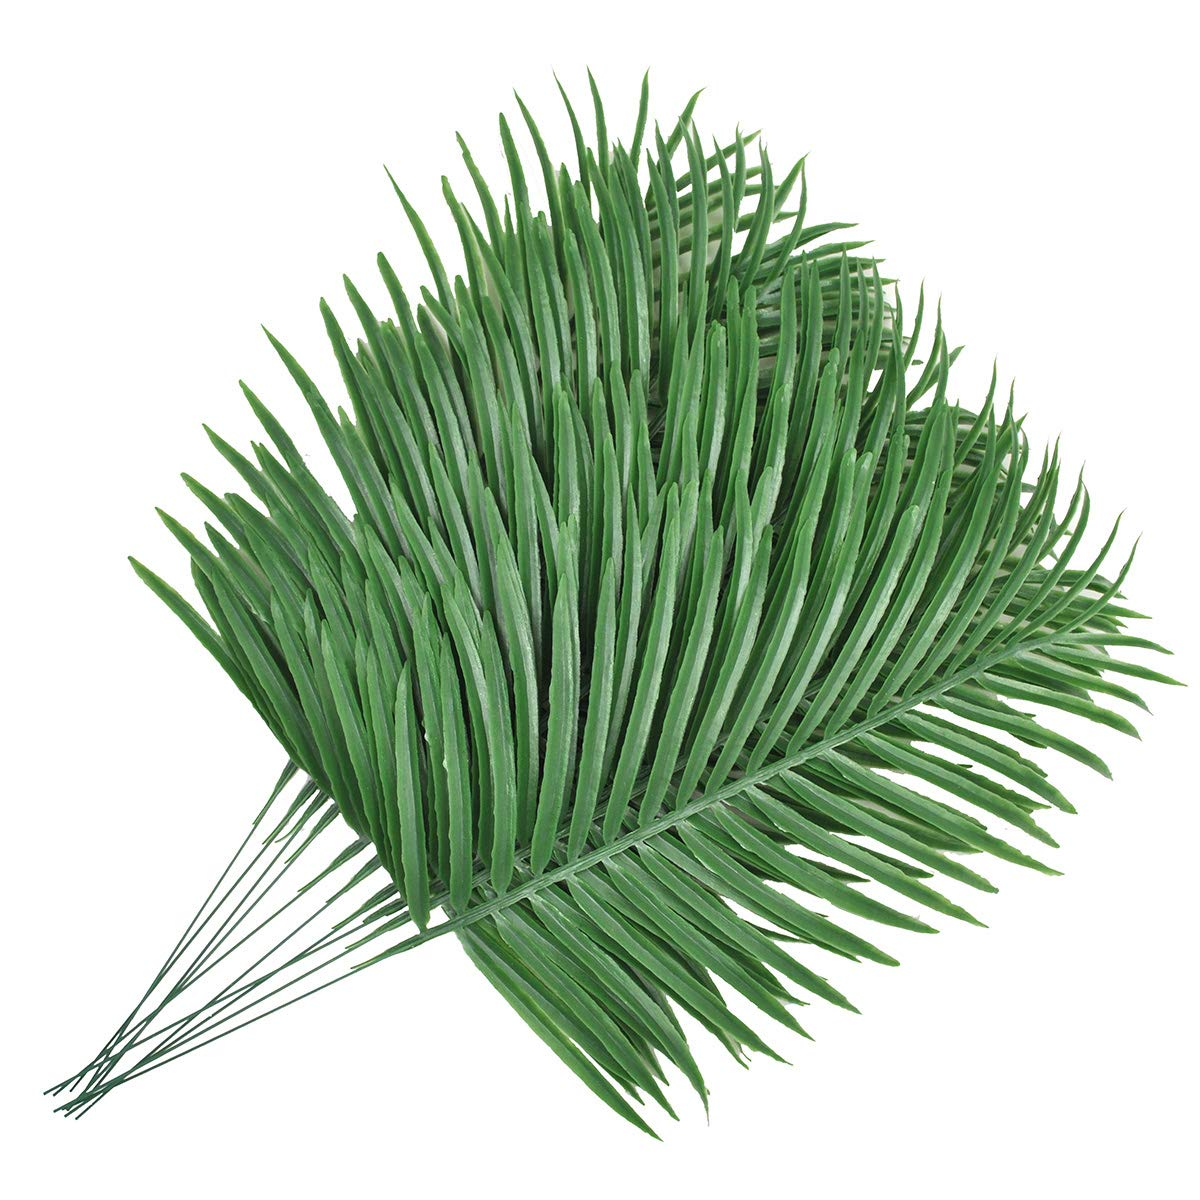 12 Pack Faux Fake Tropical large Palm Leaves Artificial Palm Plants Leaves Imitation Leaf Artificial Plants for Home Party Wedding Decorations